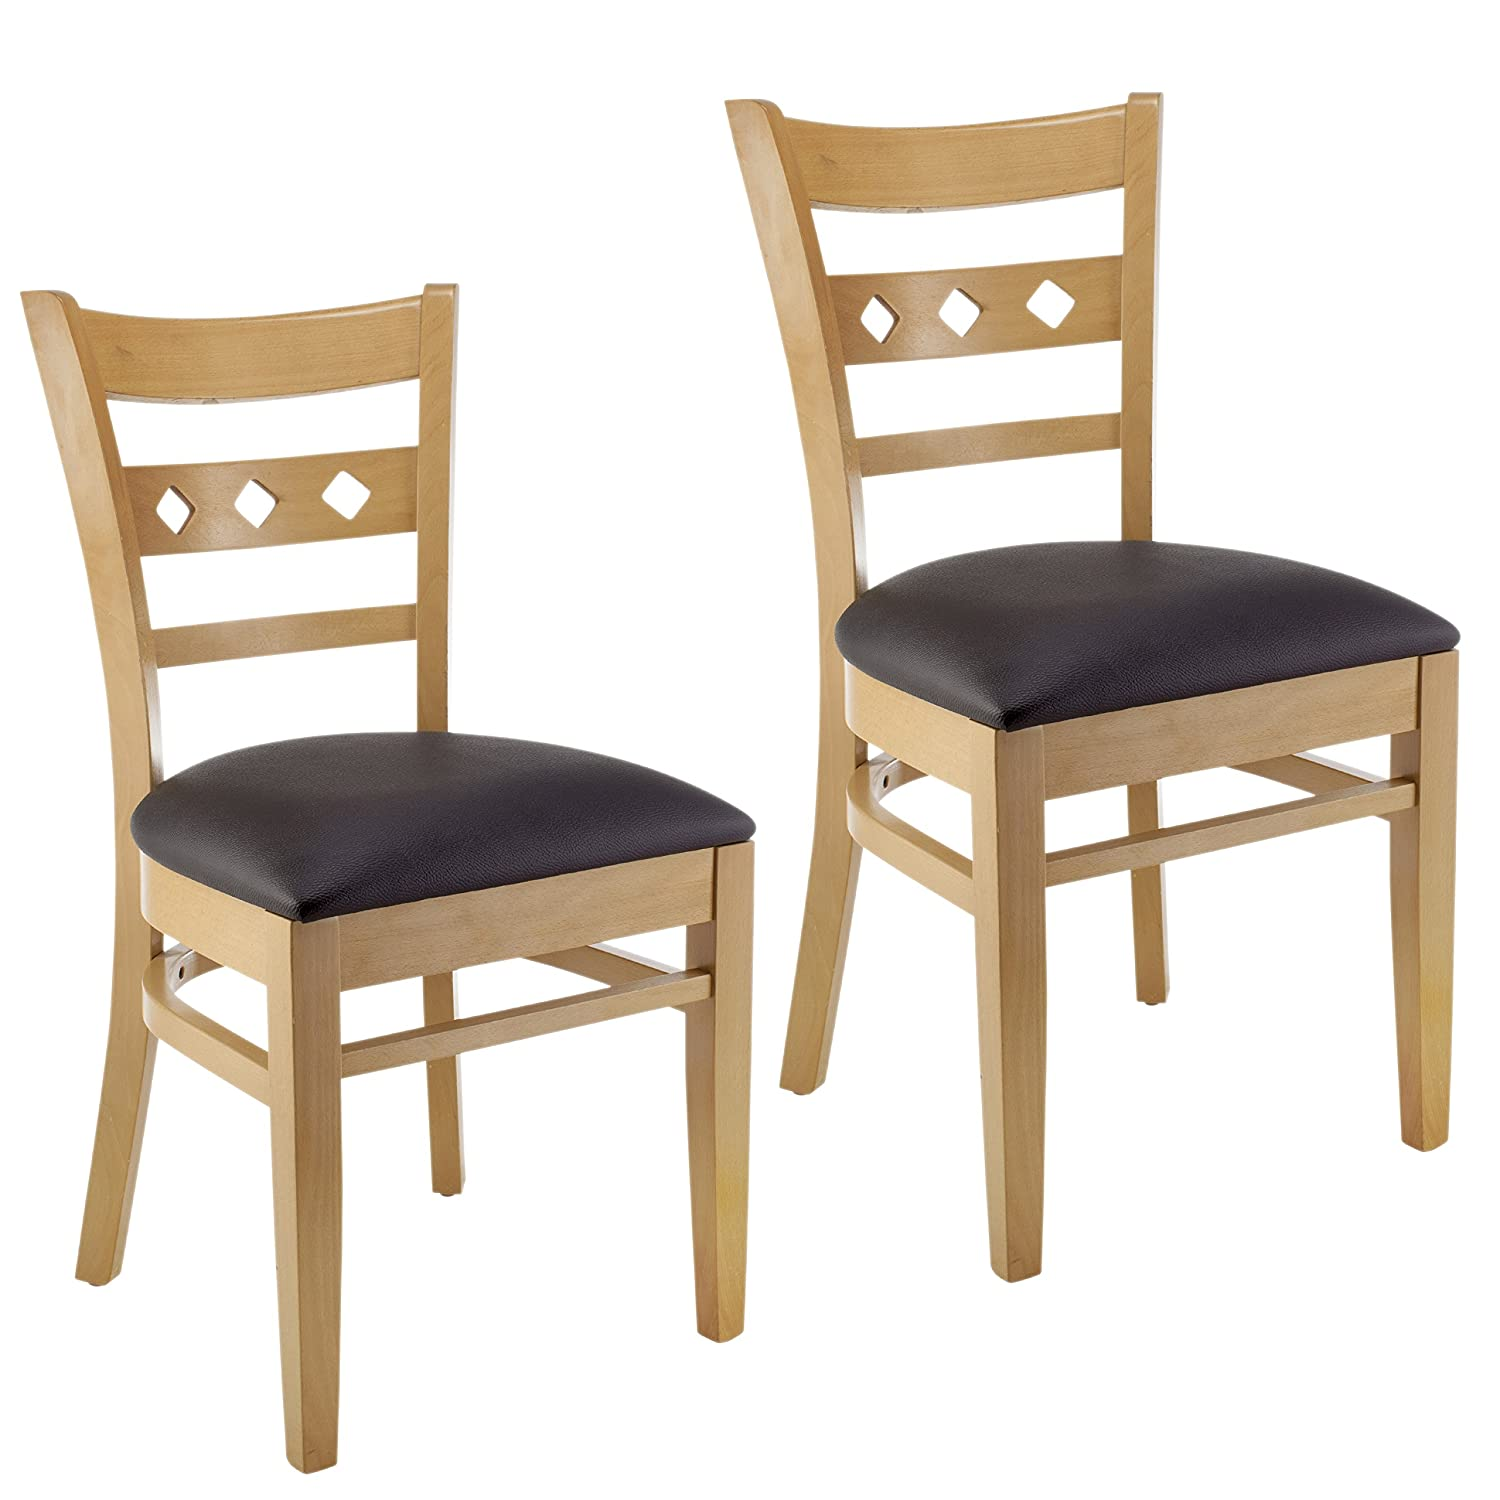 Amazon com beechwood mountain bsd 18s n solid beech wood side chairs in natural for kitchen and dining set of 2 chairs